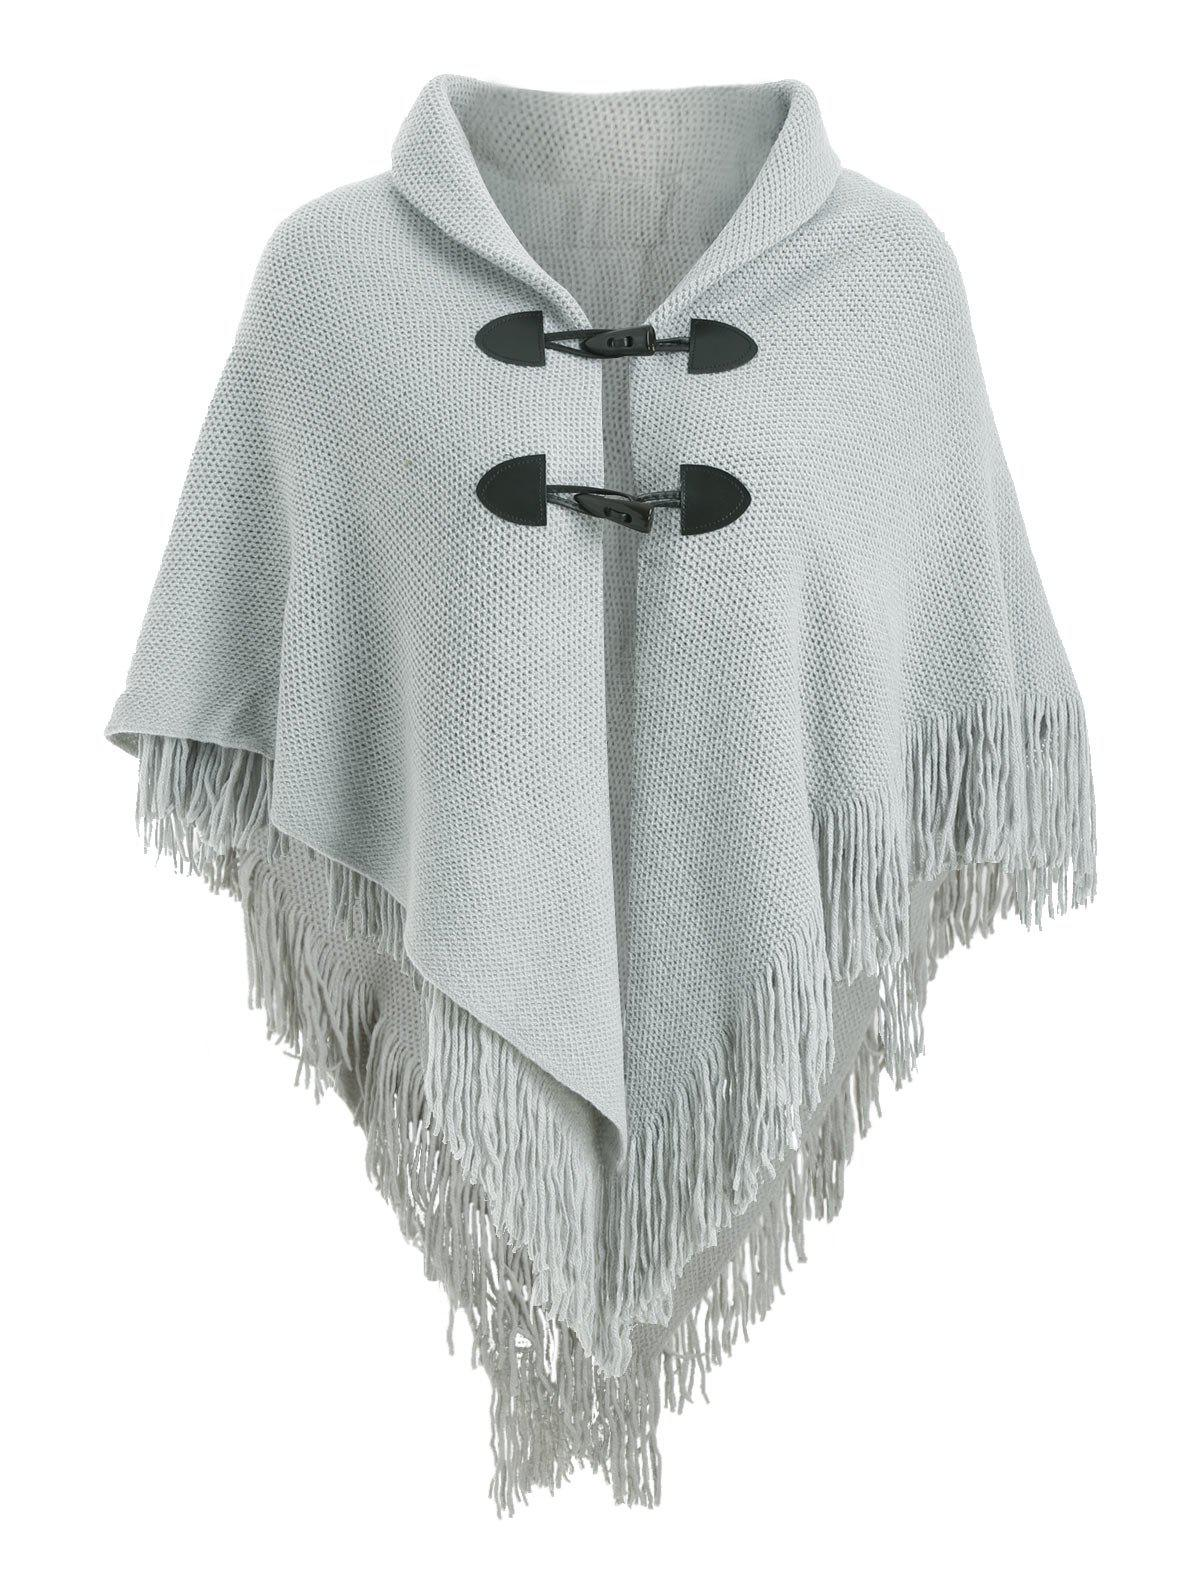 Buy Fringed Horn Button Poncho Plus Size Cardigan